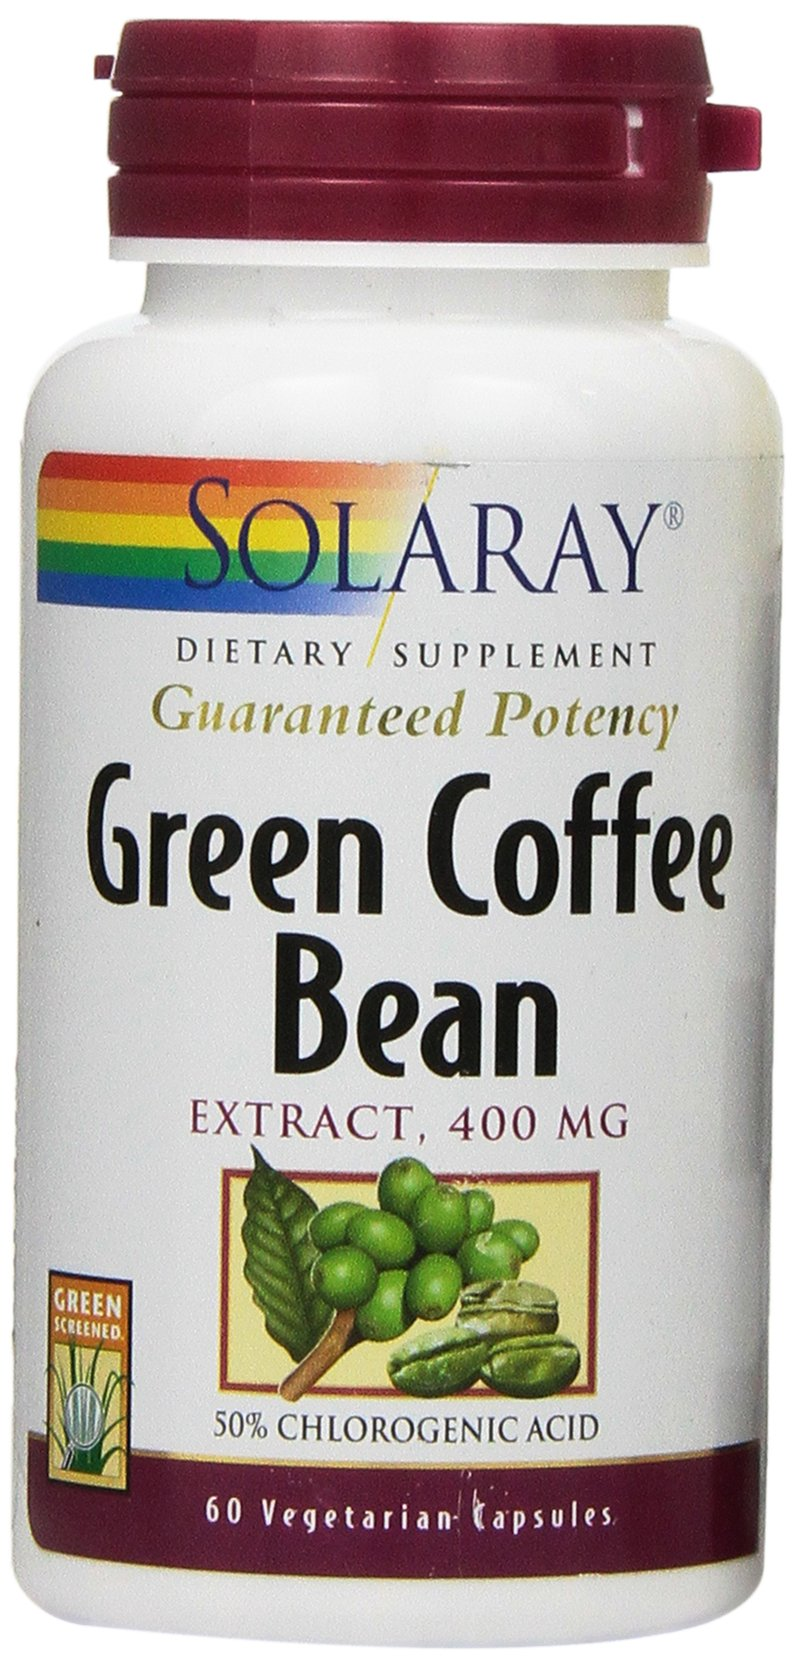 Solaray Green Coffee Bean Extract Capsules, 400mg, 60 Count